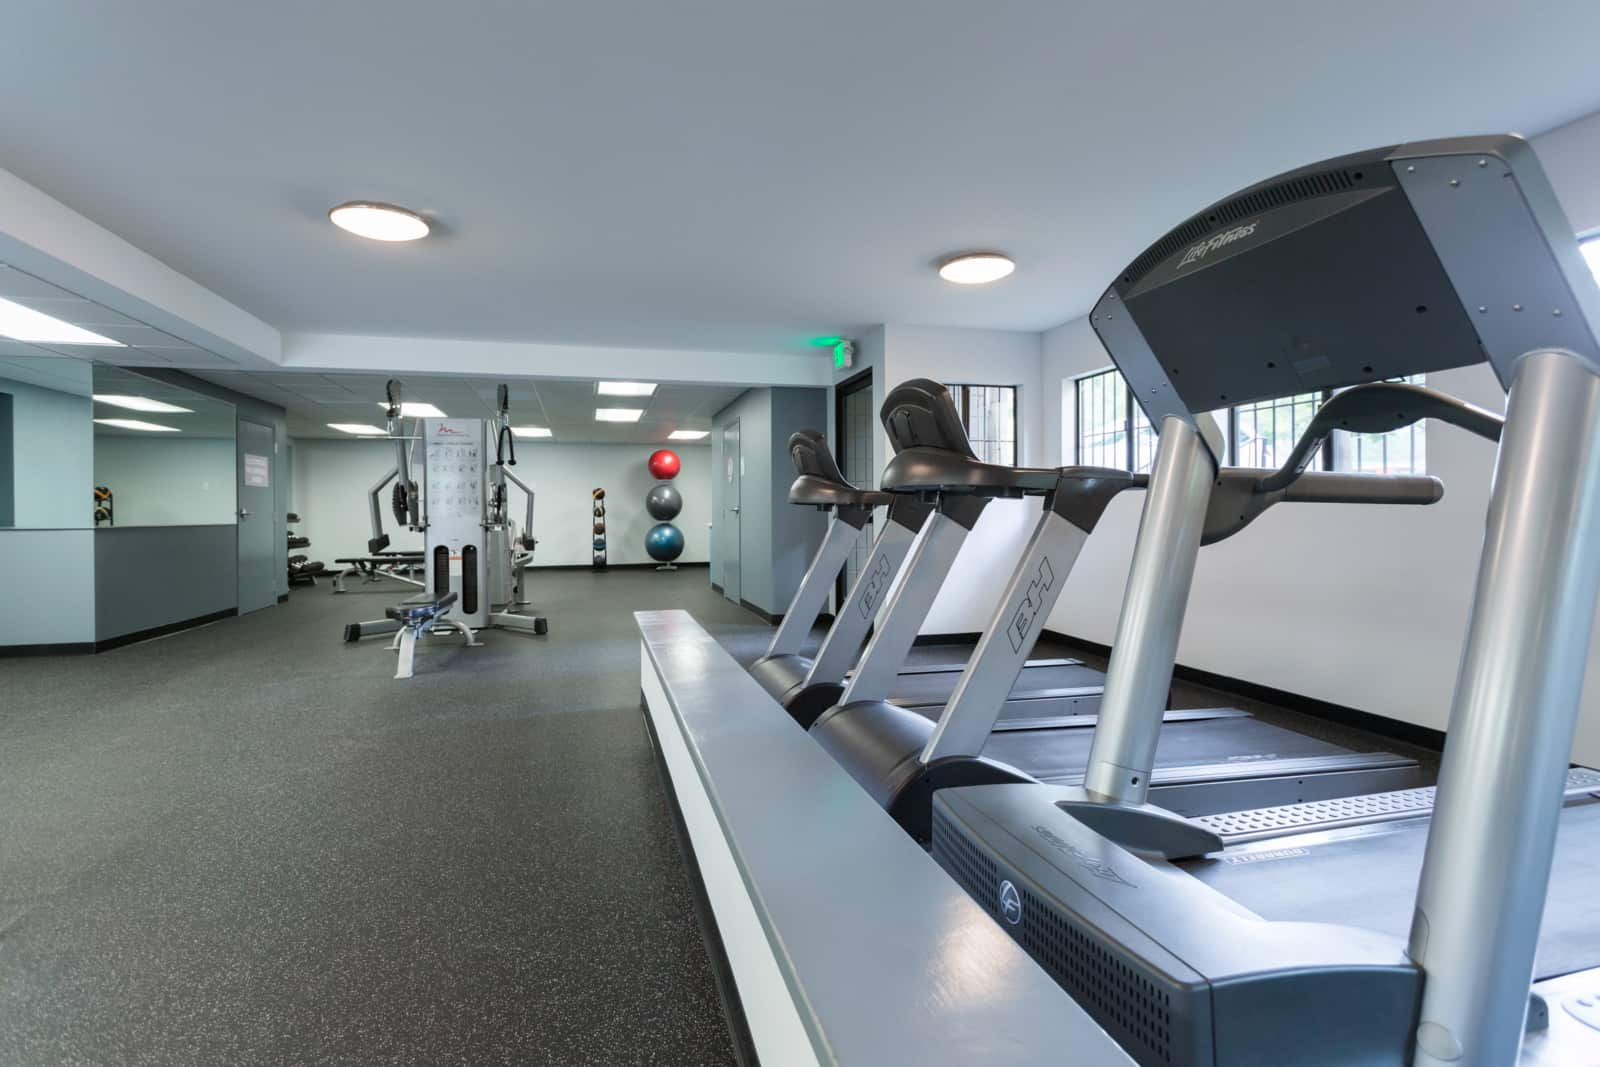 Interior of fitness center with treadmills, exercise balls and other exercise machines.